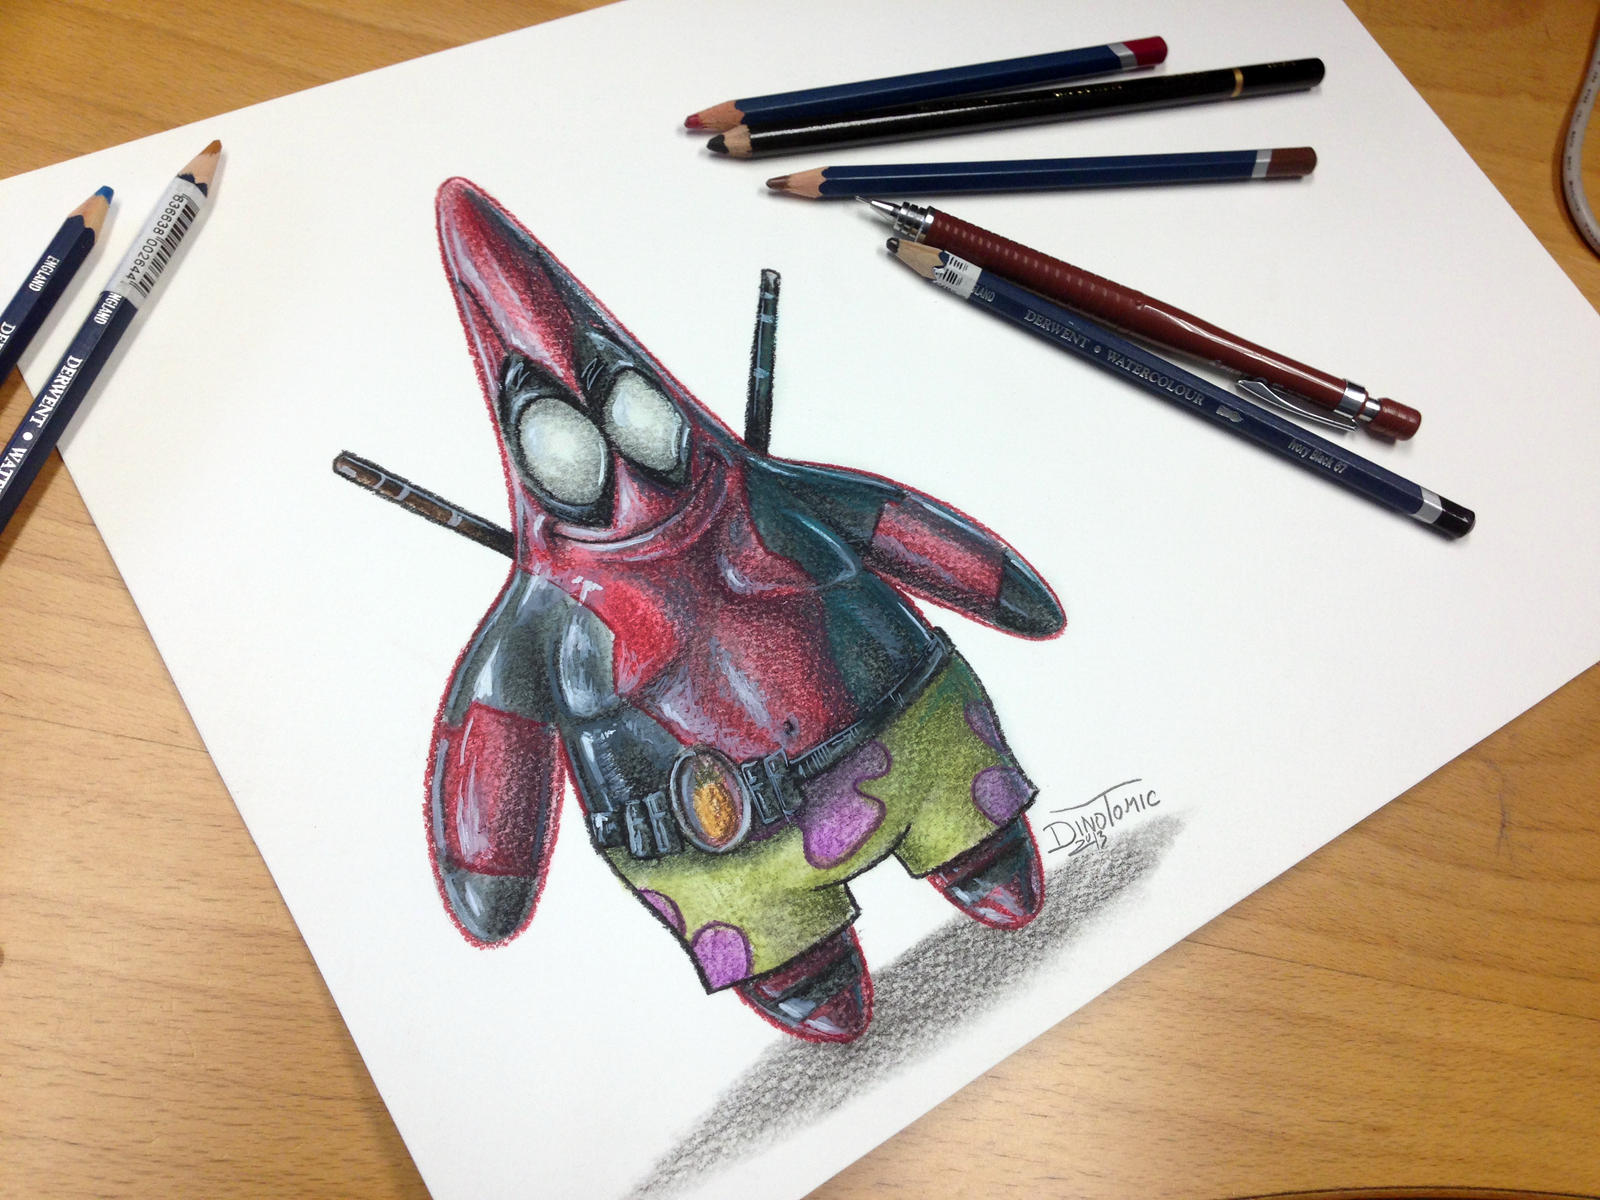 Pencil drawing of Patrick as Deadpool by AtomiccircuS